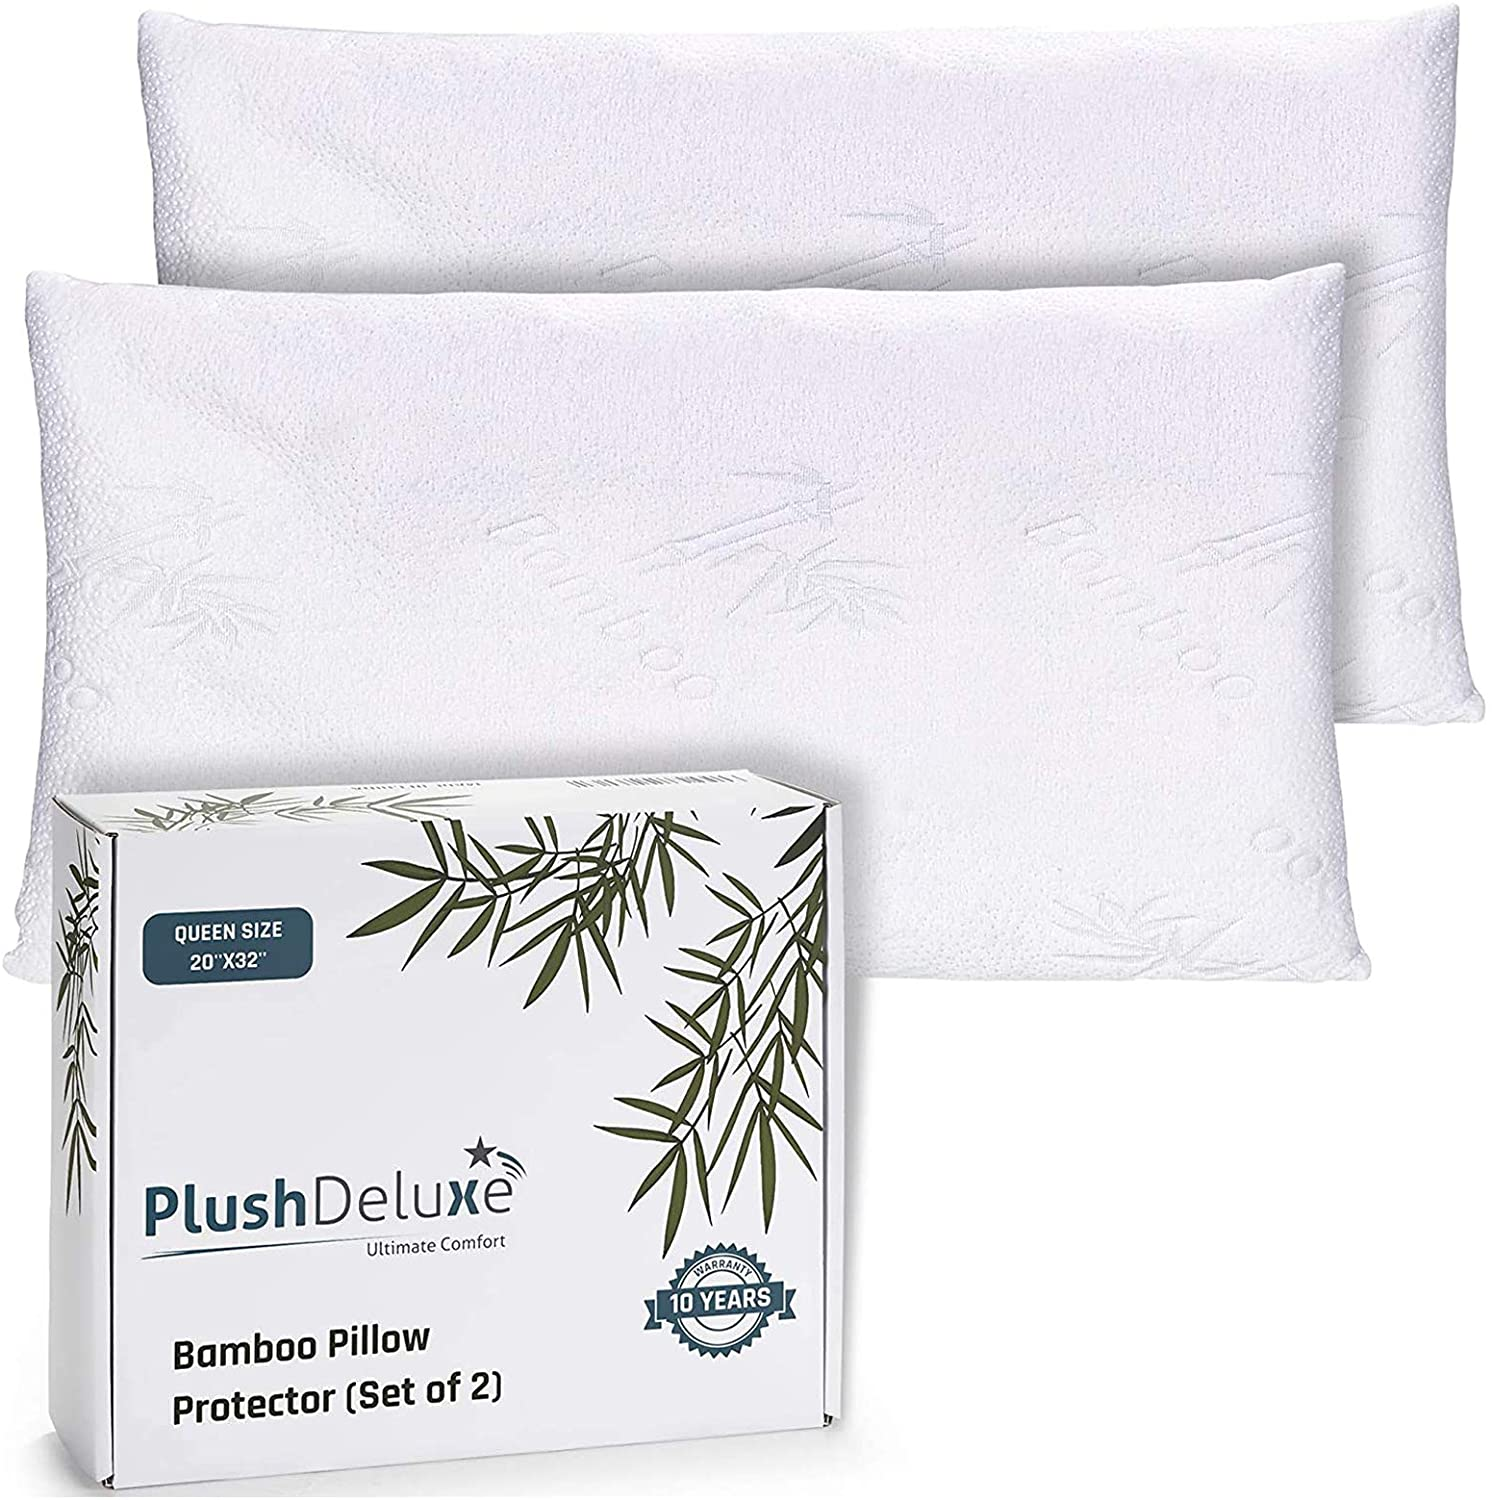 Amazon Com Premium Bamboo Queen Pillow Protector Covers Waterproof Allergy Dust And Mite Proof Zippered Protectors Pillowcase Zipper Cover Allergen Case Pack For Sleep Pillows Set Of 2 Kitchen Dining